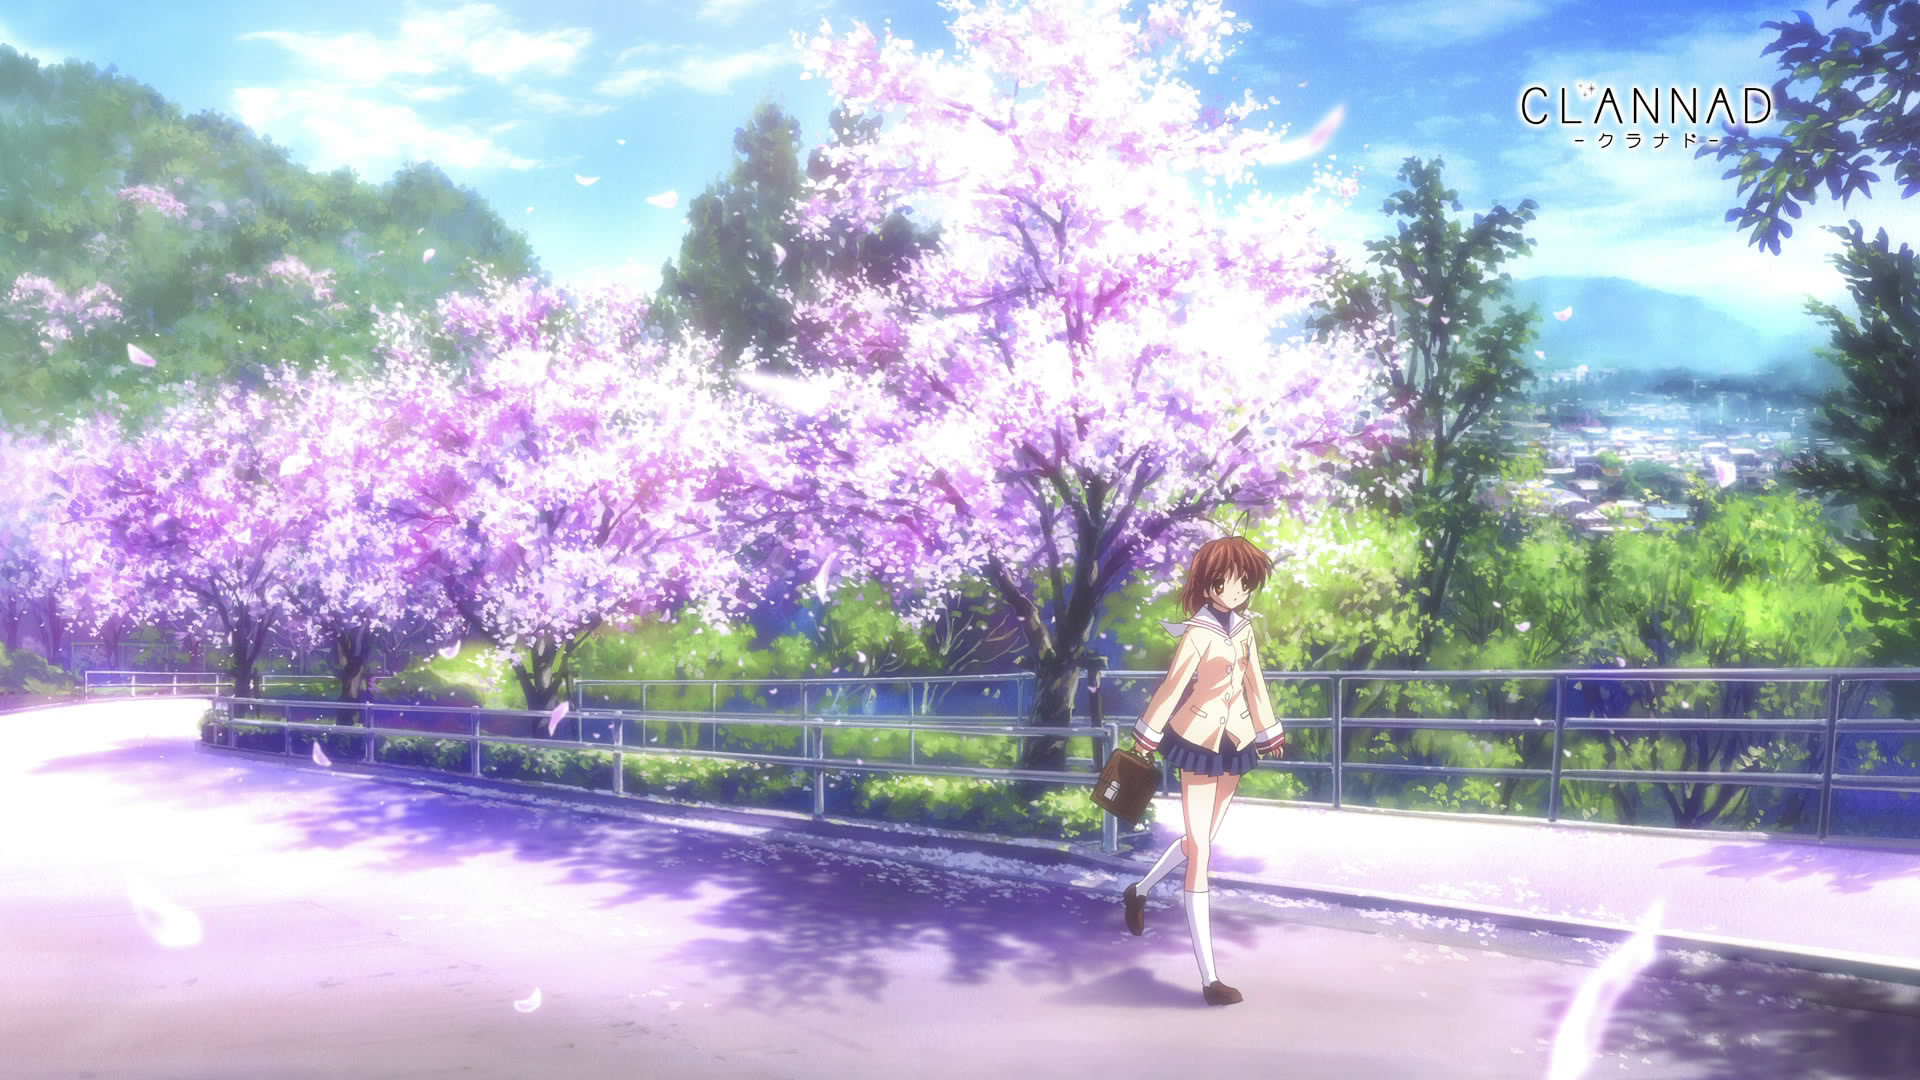 1920x1080 Cherry Blossoms Wallpaper  Cherry, Blossoms, Clannad .